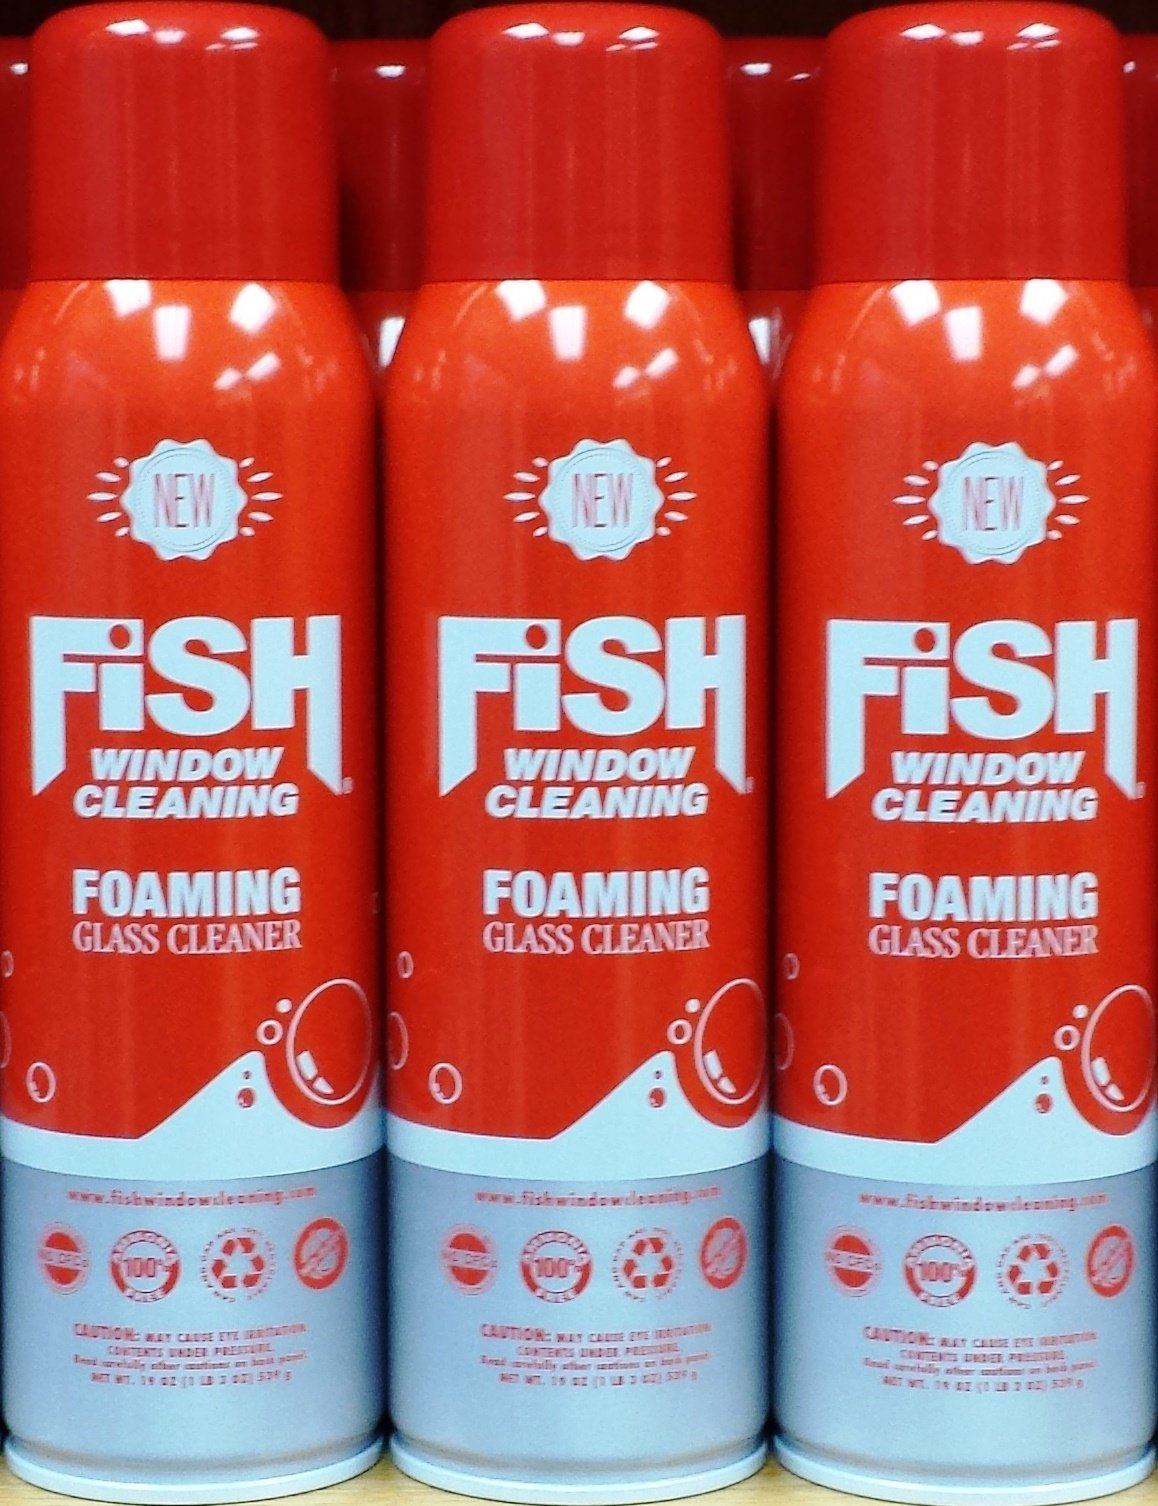 Fish Window Cleaning Foaming Glass Cleaner 3-Pack